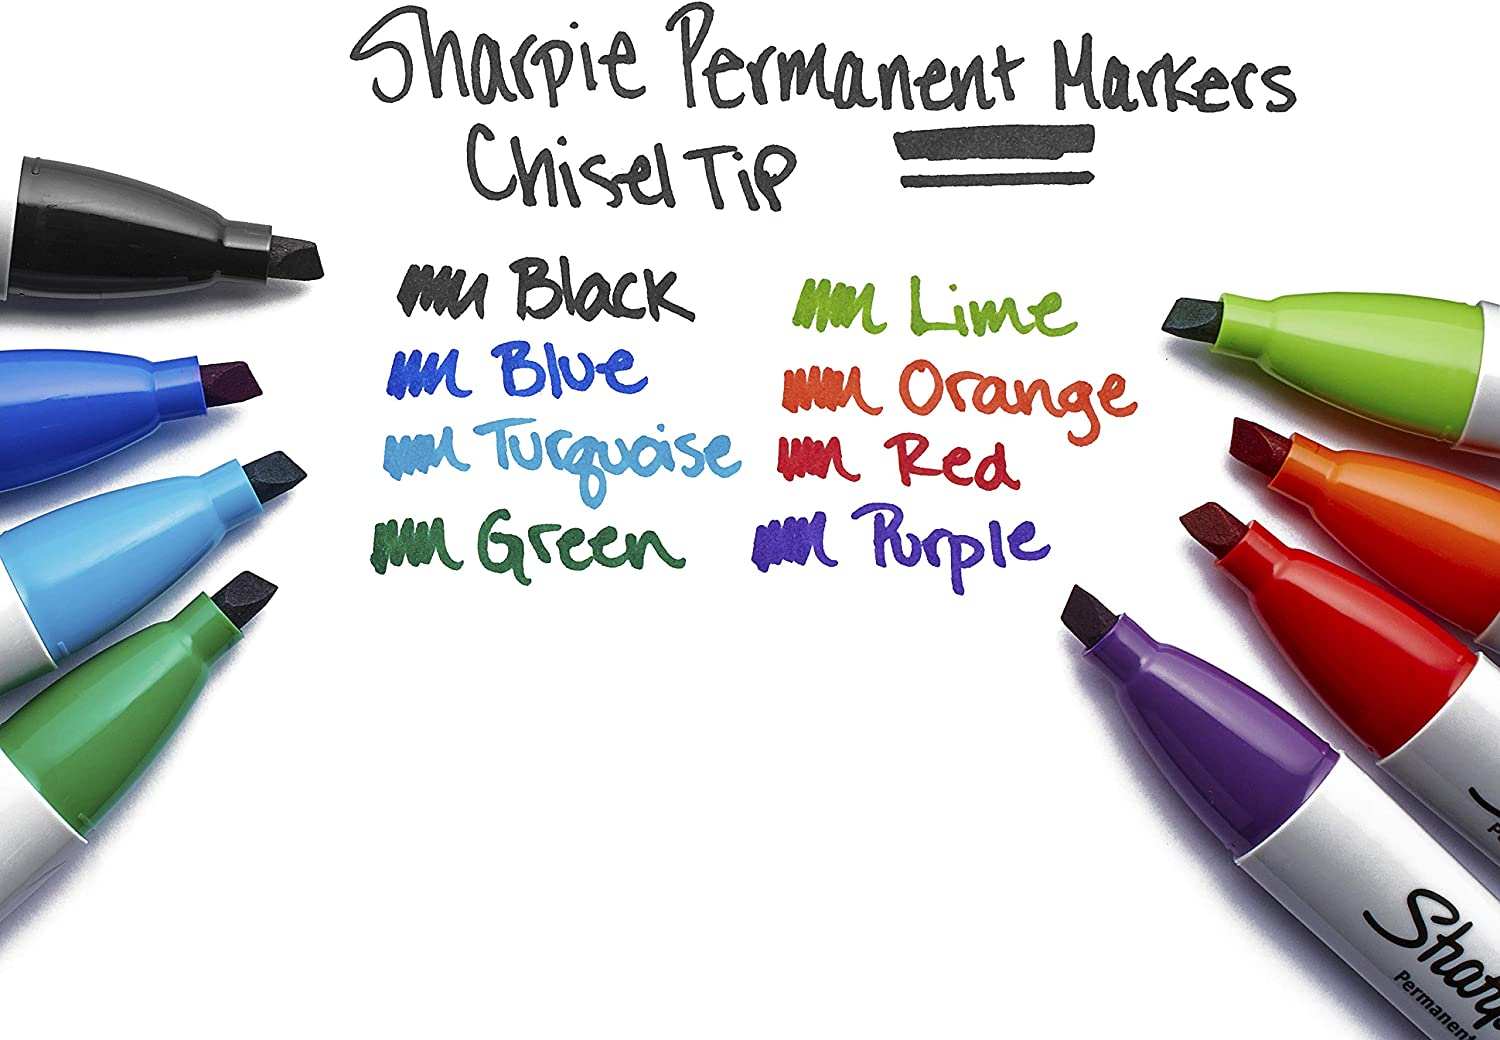 Green Red Black Blue Chisel Tip Sharpie Permanent Markers